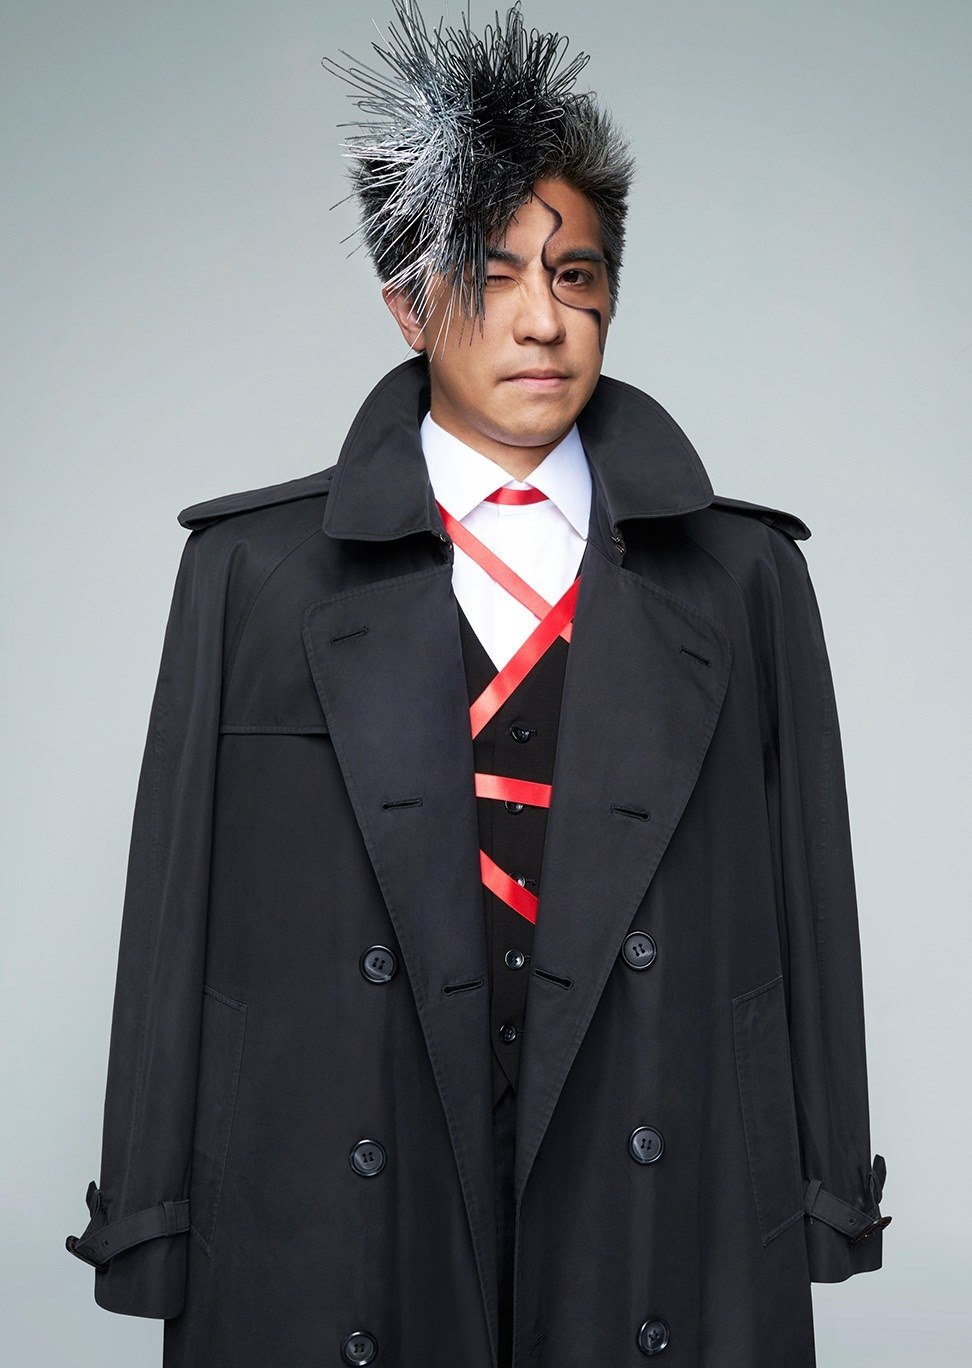 5-cosplay_vincenttsui